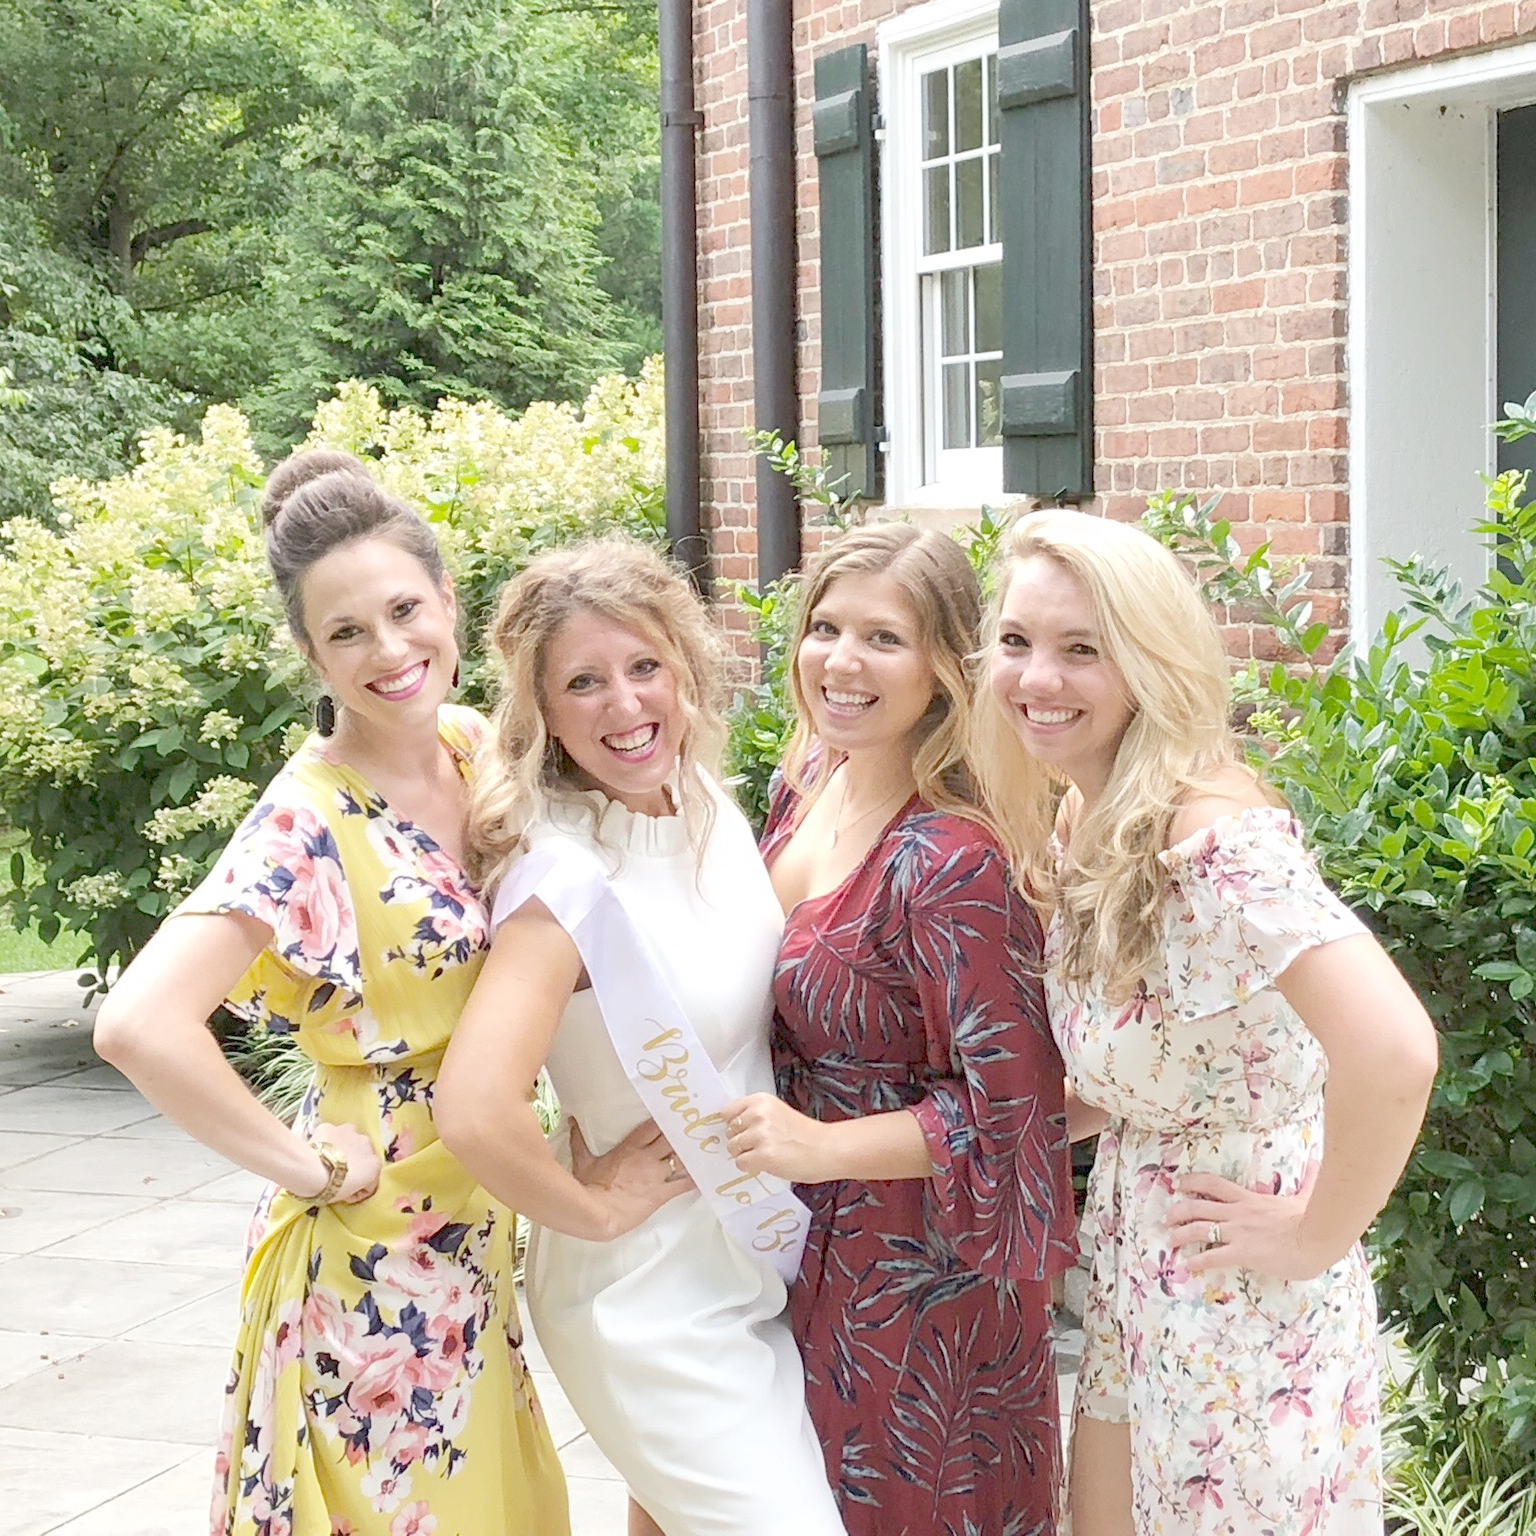 Whitney, a Bridesmaid, myself, Jeri, my maid of honor, and Courtney, A Bridesmaid